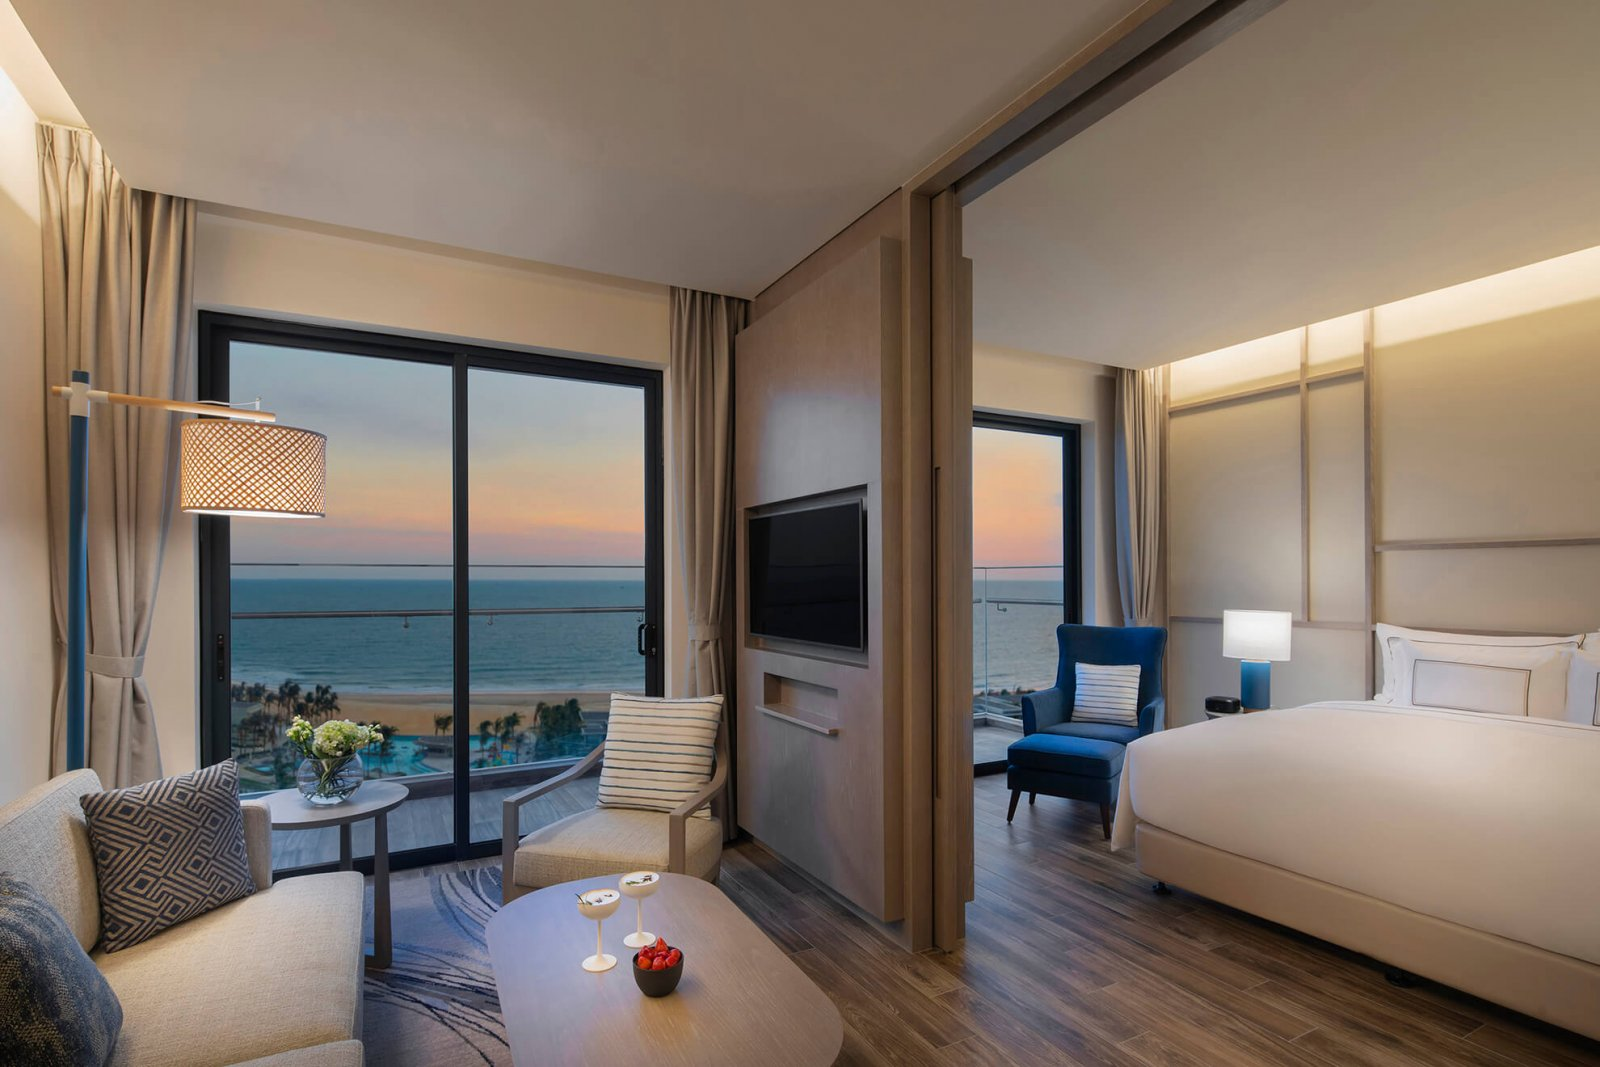 Interior view of the room with night area, day area, and balcony overlooking the beach at Melia Ho Tram